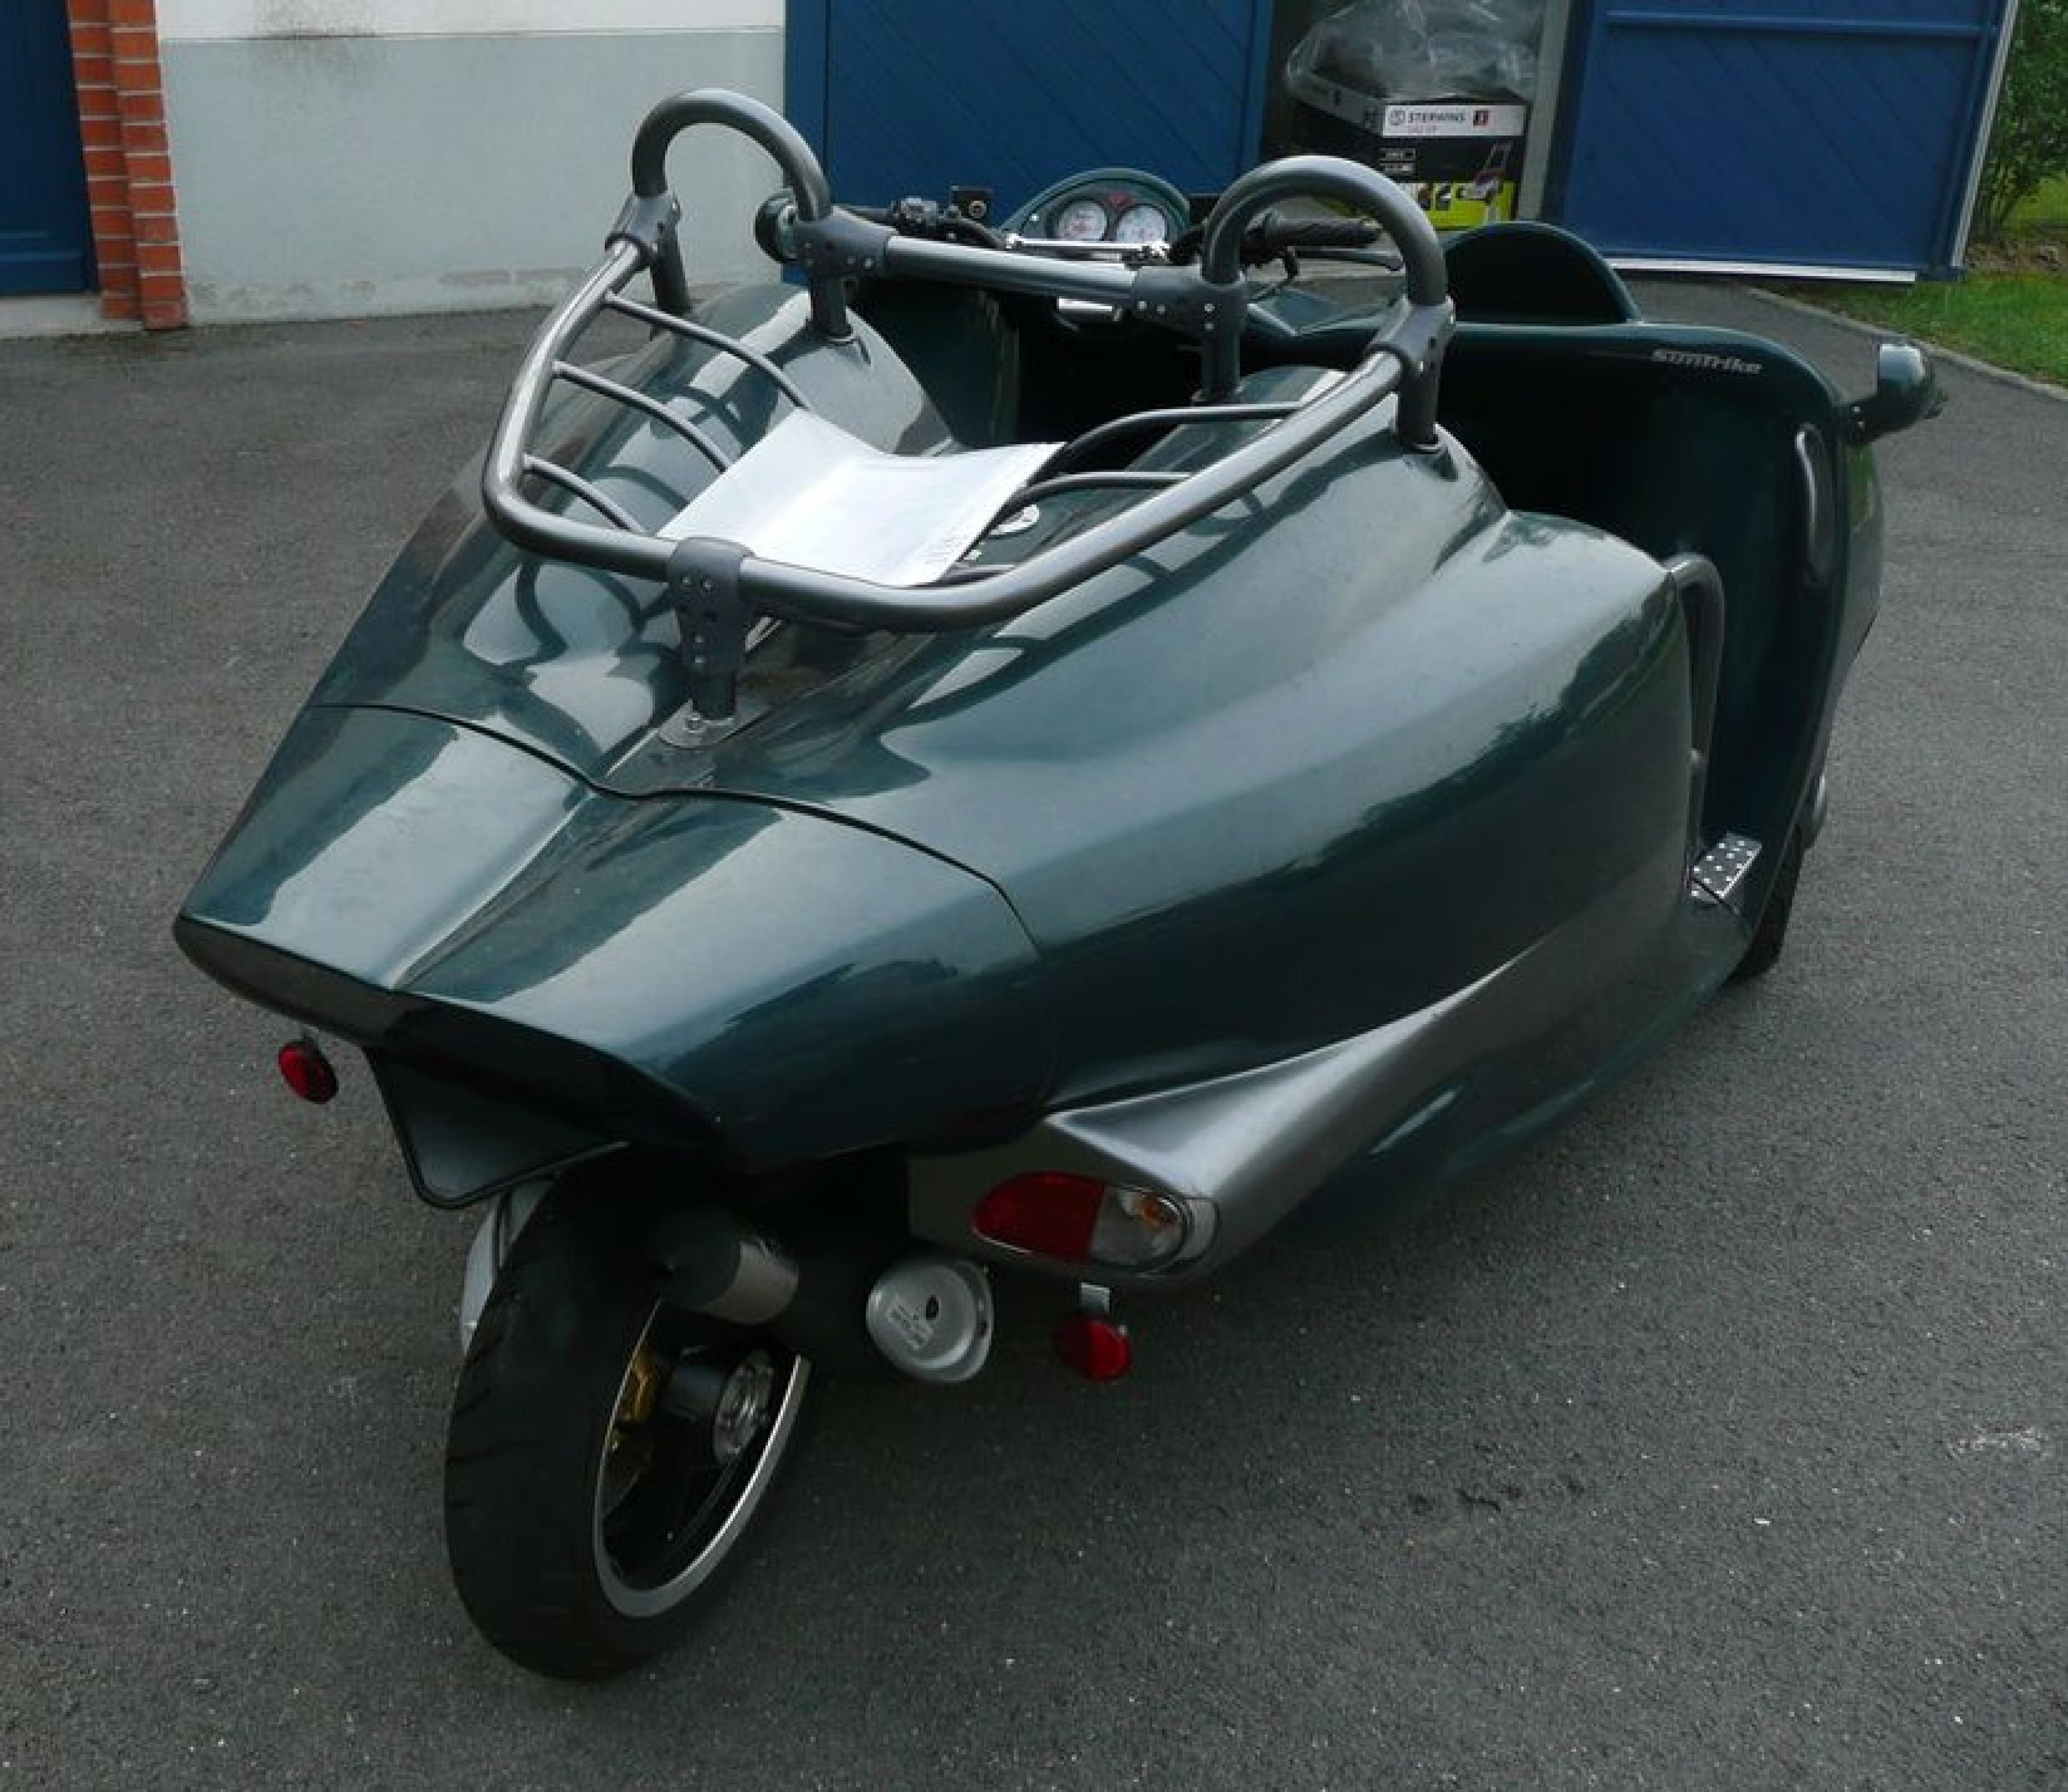 SunTrike 50cc - Photo 1